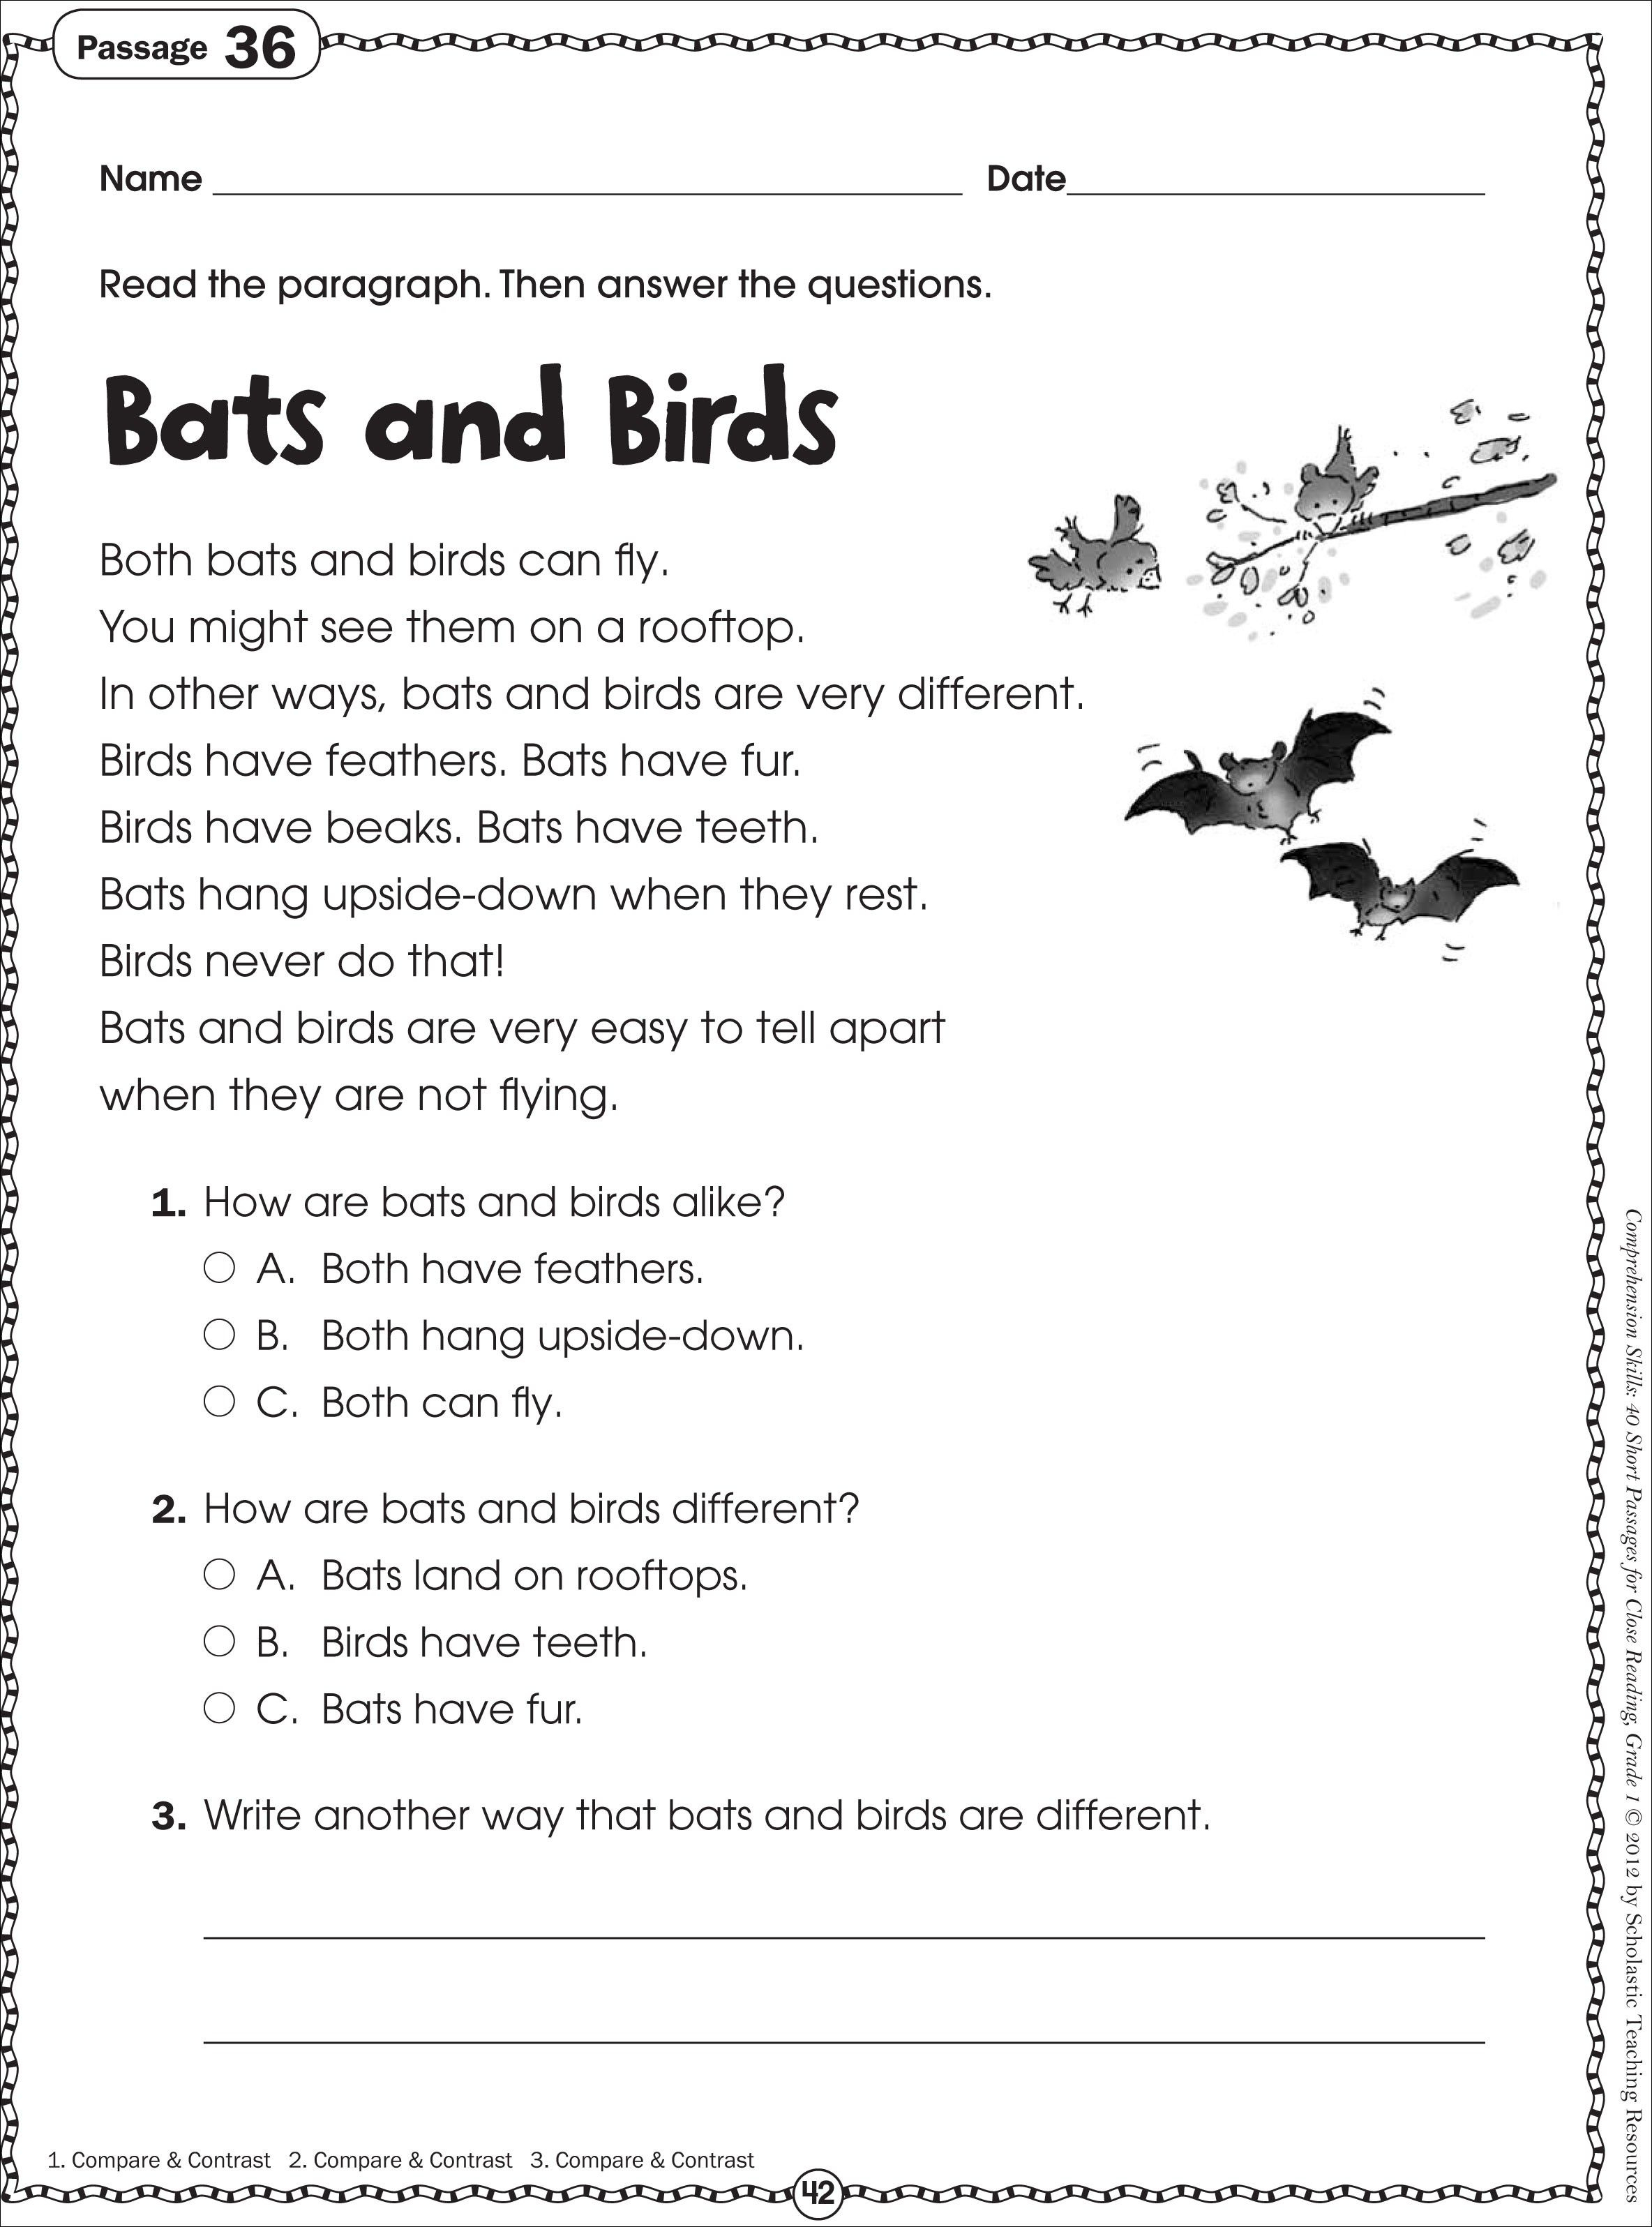 Free Printable Reading Comprehension Worksheets For Kindergarten - Free Printable Short Stories For 2Nd Graders